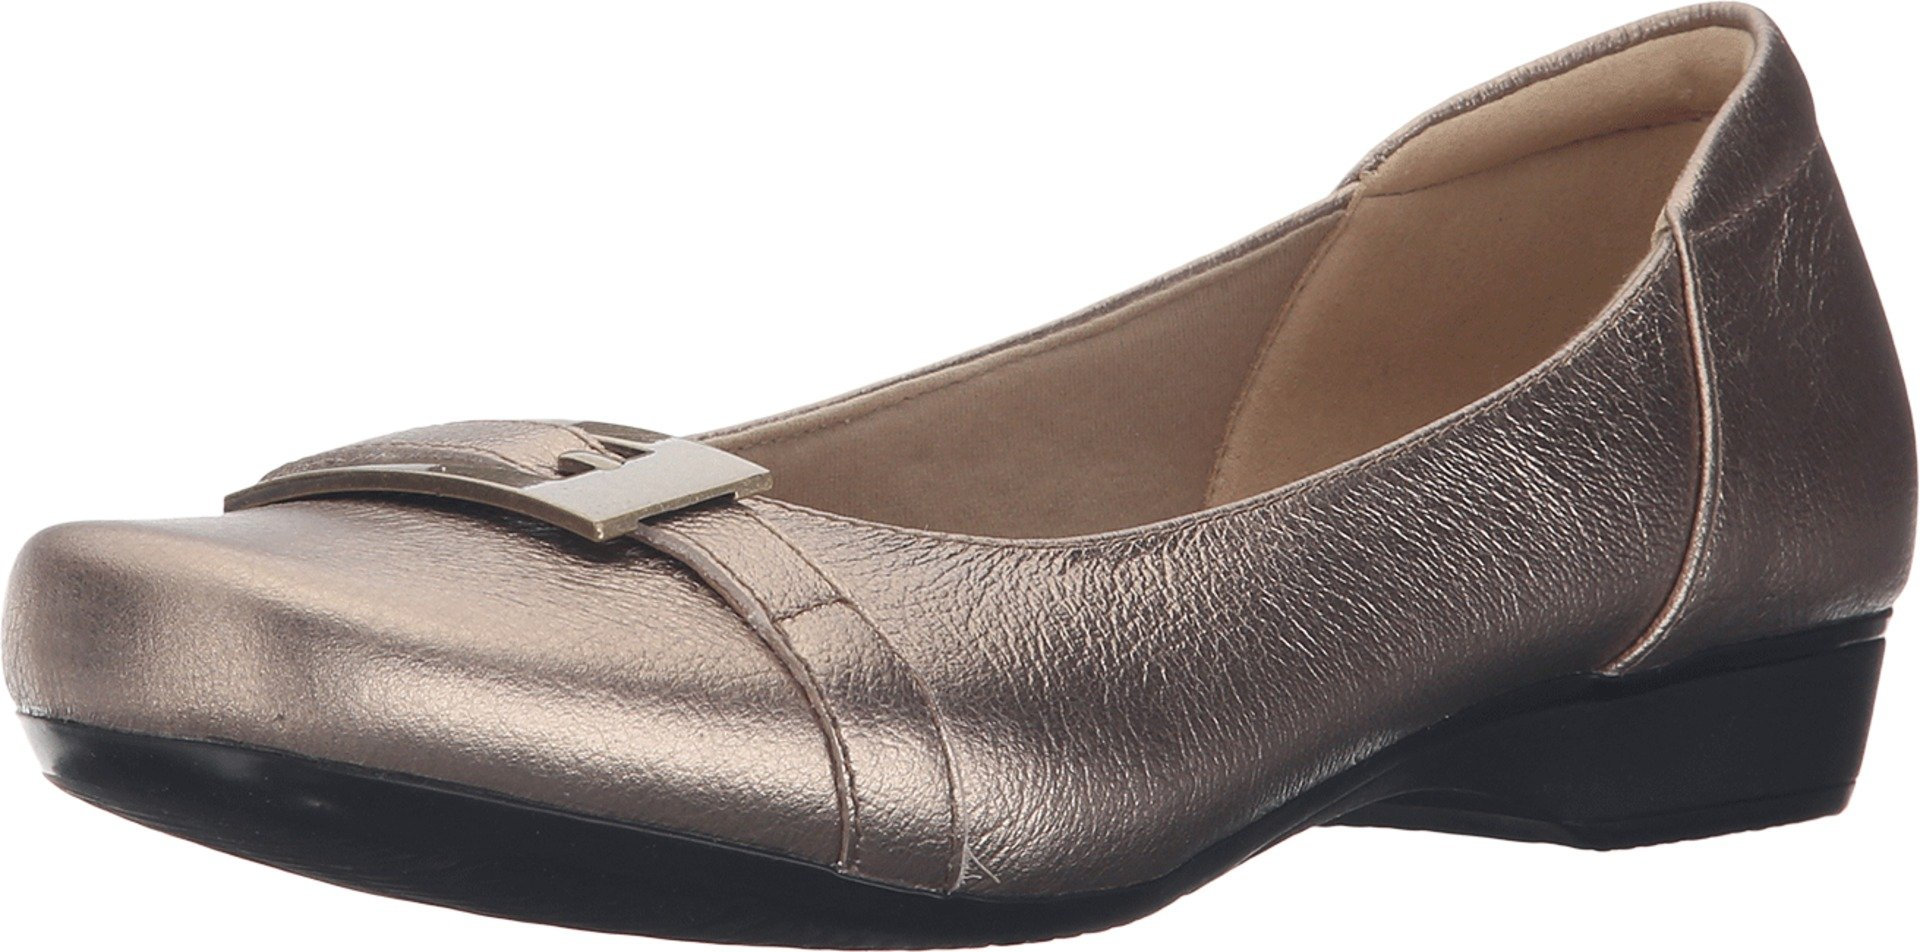 CLARKS Women's Blanche West Flat, Gold/Metallic Leather, 8 M US